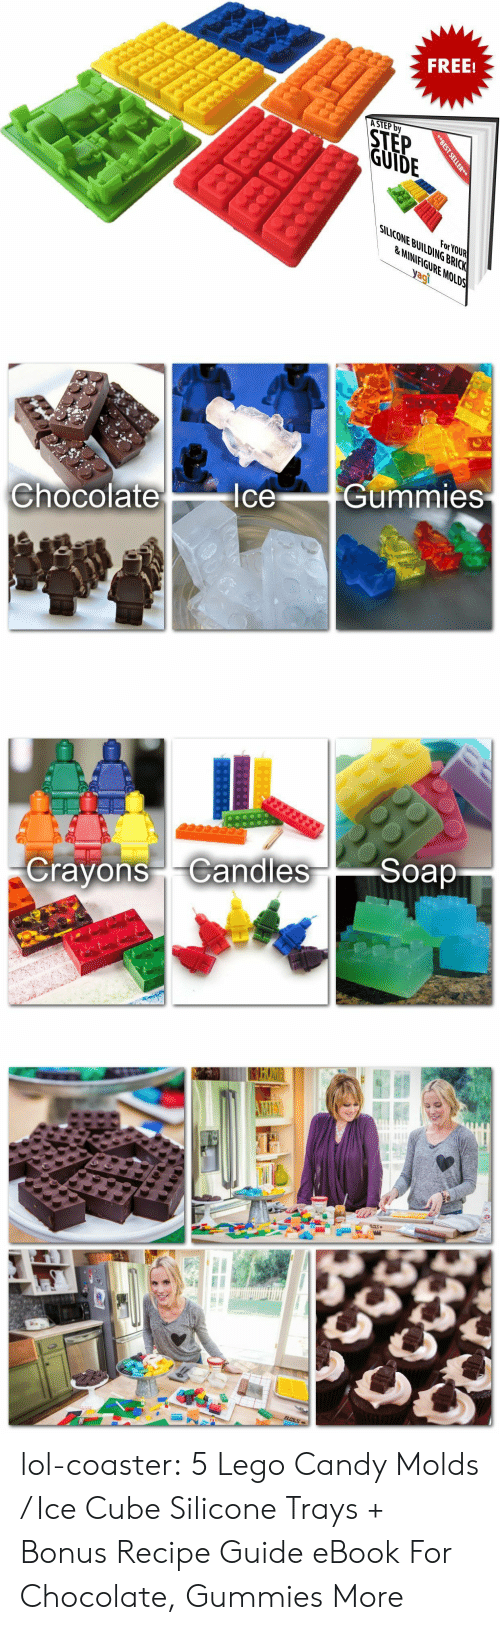 Amazon, Candy, and Ice Cube: FREE!  ASTEP by  STEP  GUIDE  For YOUR  SIuCONE BULDING BRICK  LANNIFIGURE MOLDS  agi   Chocolate  IceGummies   rayonsandiesSoap lol-coaster:  5 Lego Candy Molds / Ice Cube Silicone Trays + Bonus Recipe Guide eBook For Chocolate, Gummies  More